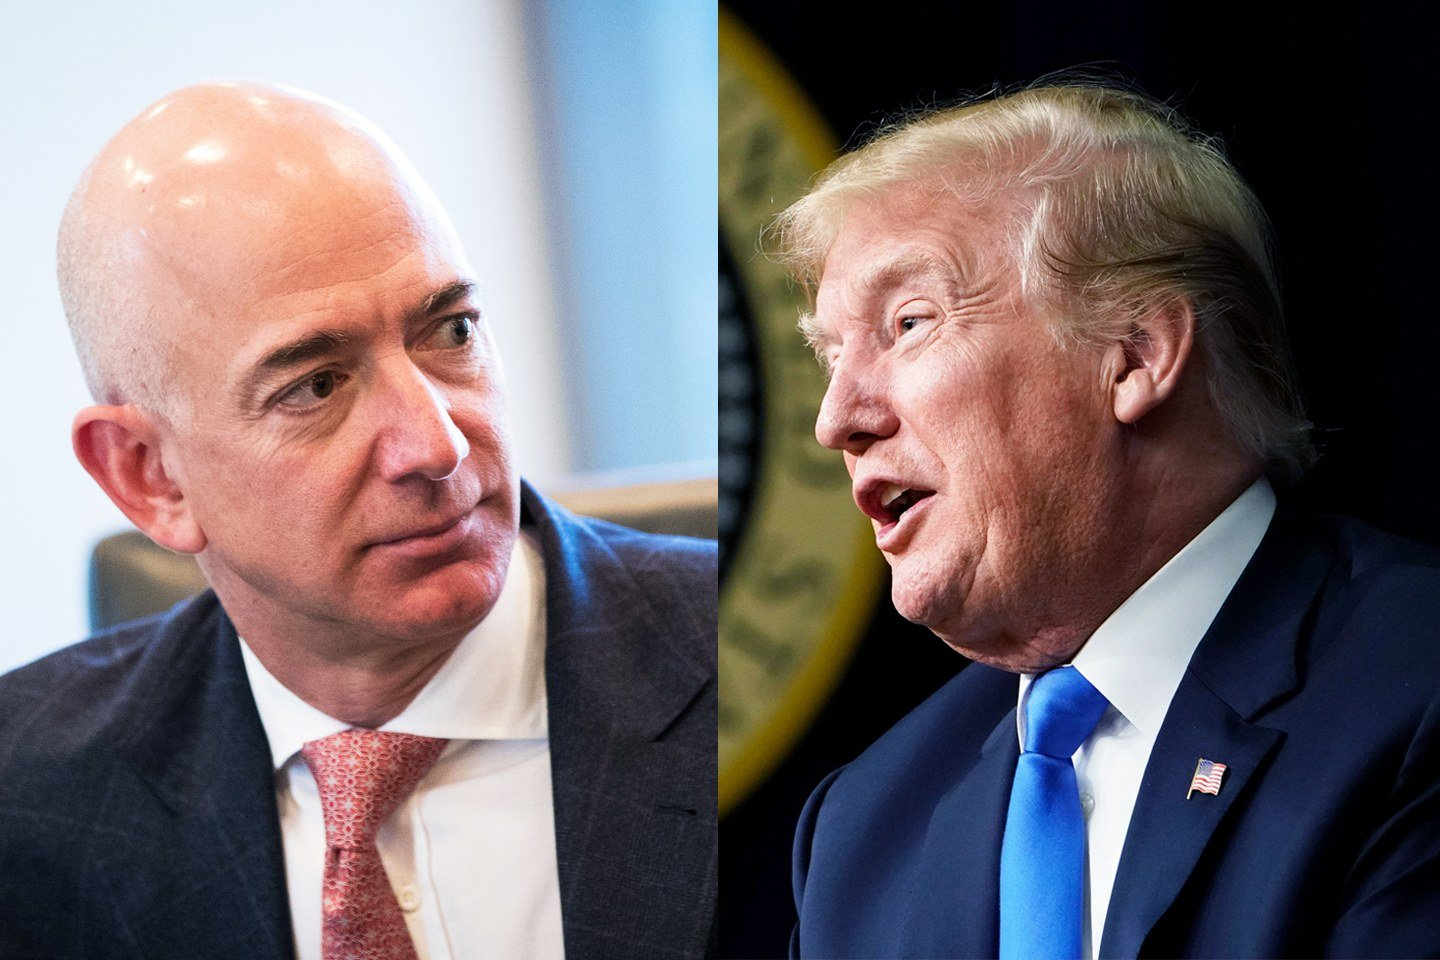 The Worlds Richest Man Just Lost 107 Billion as Trump Tweets About Amazon